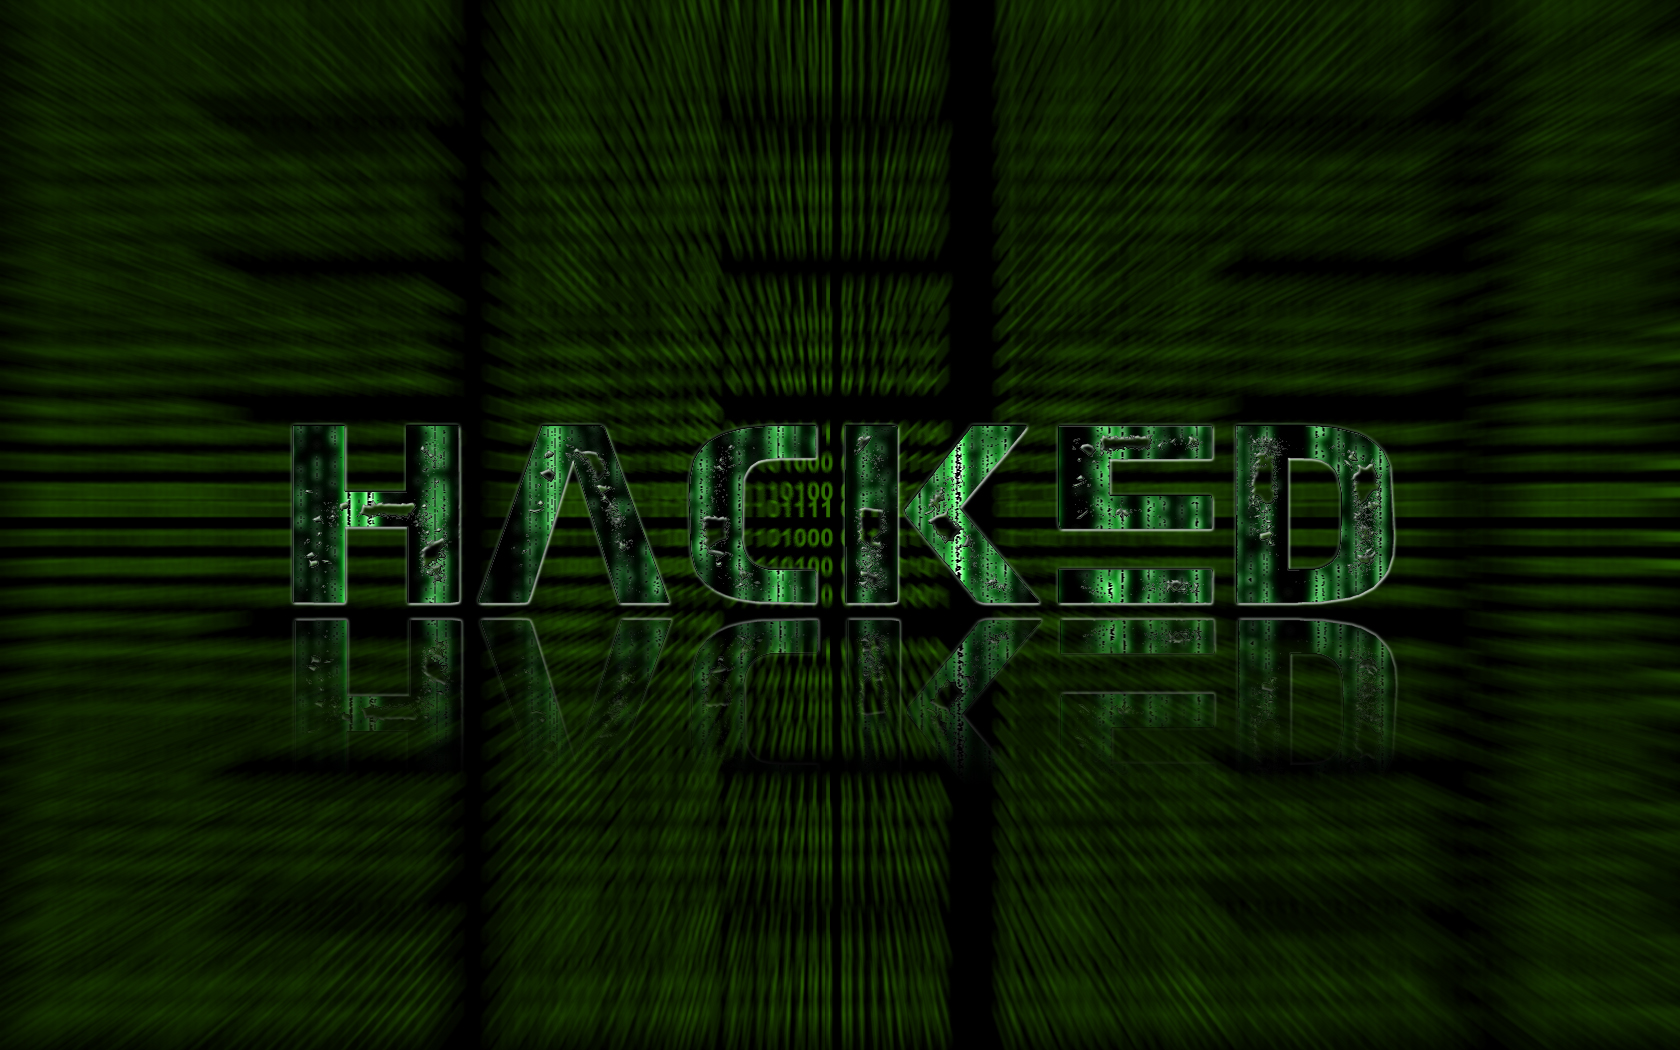 Hacked wallpaper by Emir4eqaL 1680x1050